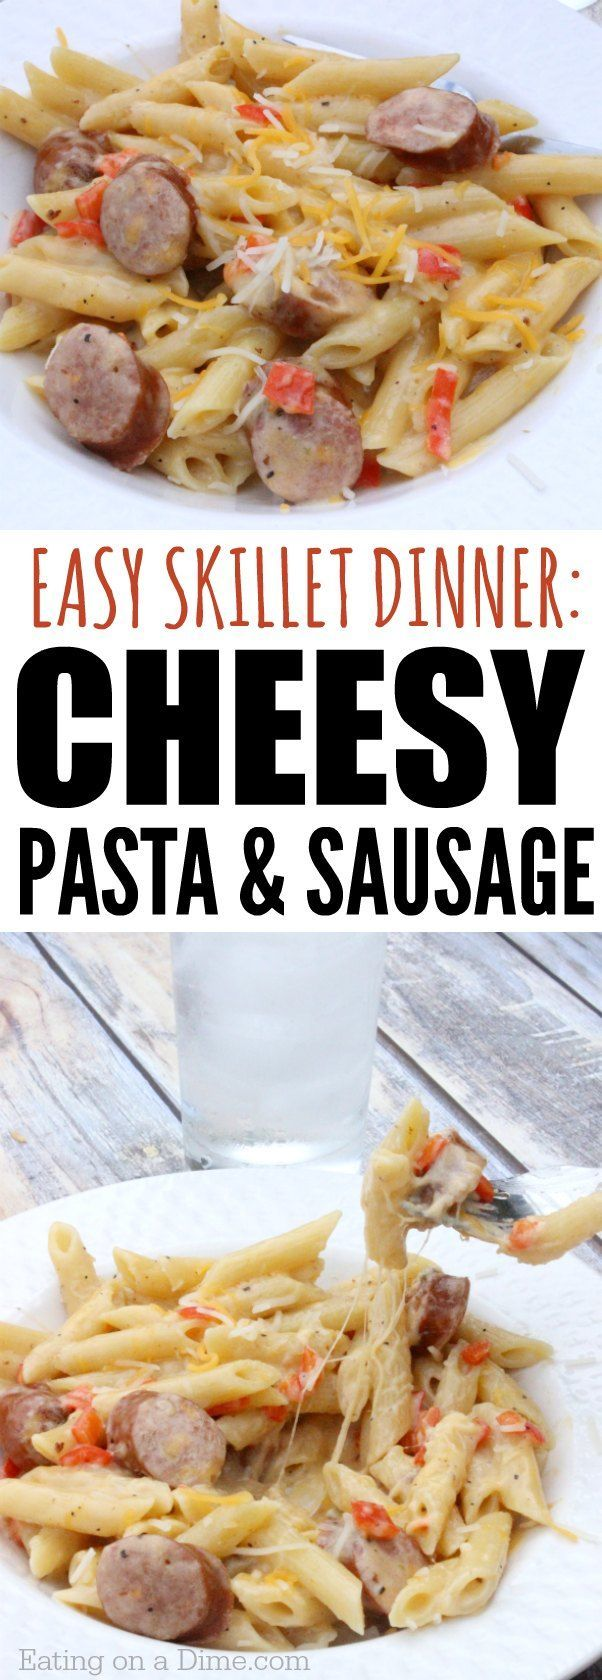 Looking for one pot meals? Try this Cheesy Pasta and Sausage Skillet Dinner recipe. It is so easy and delicious. Perfect for a busy night.